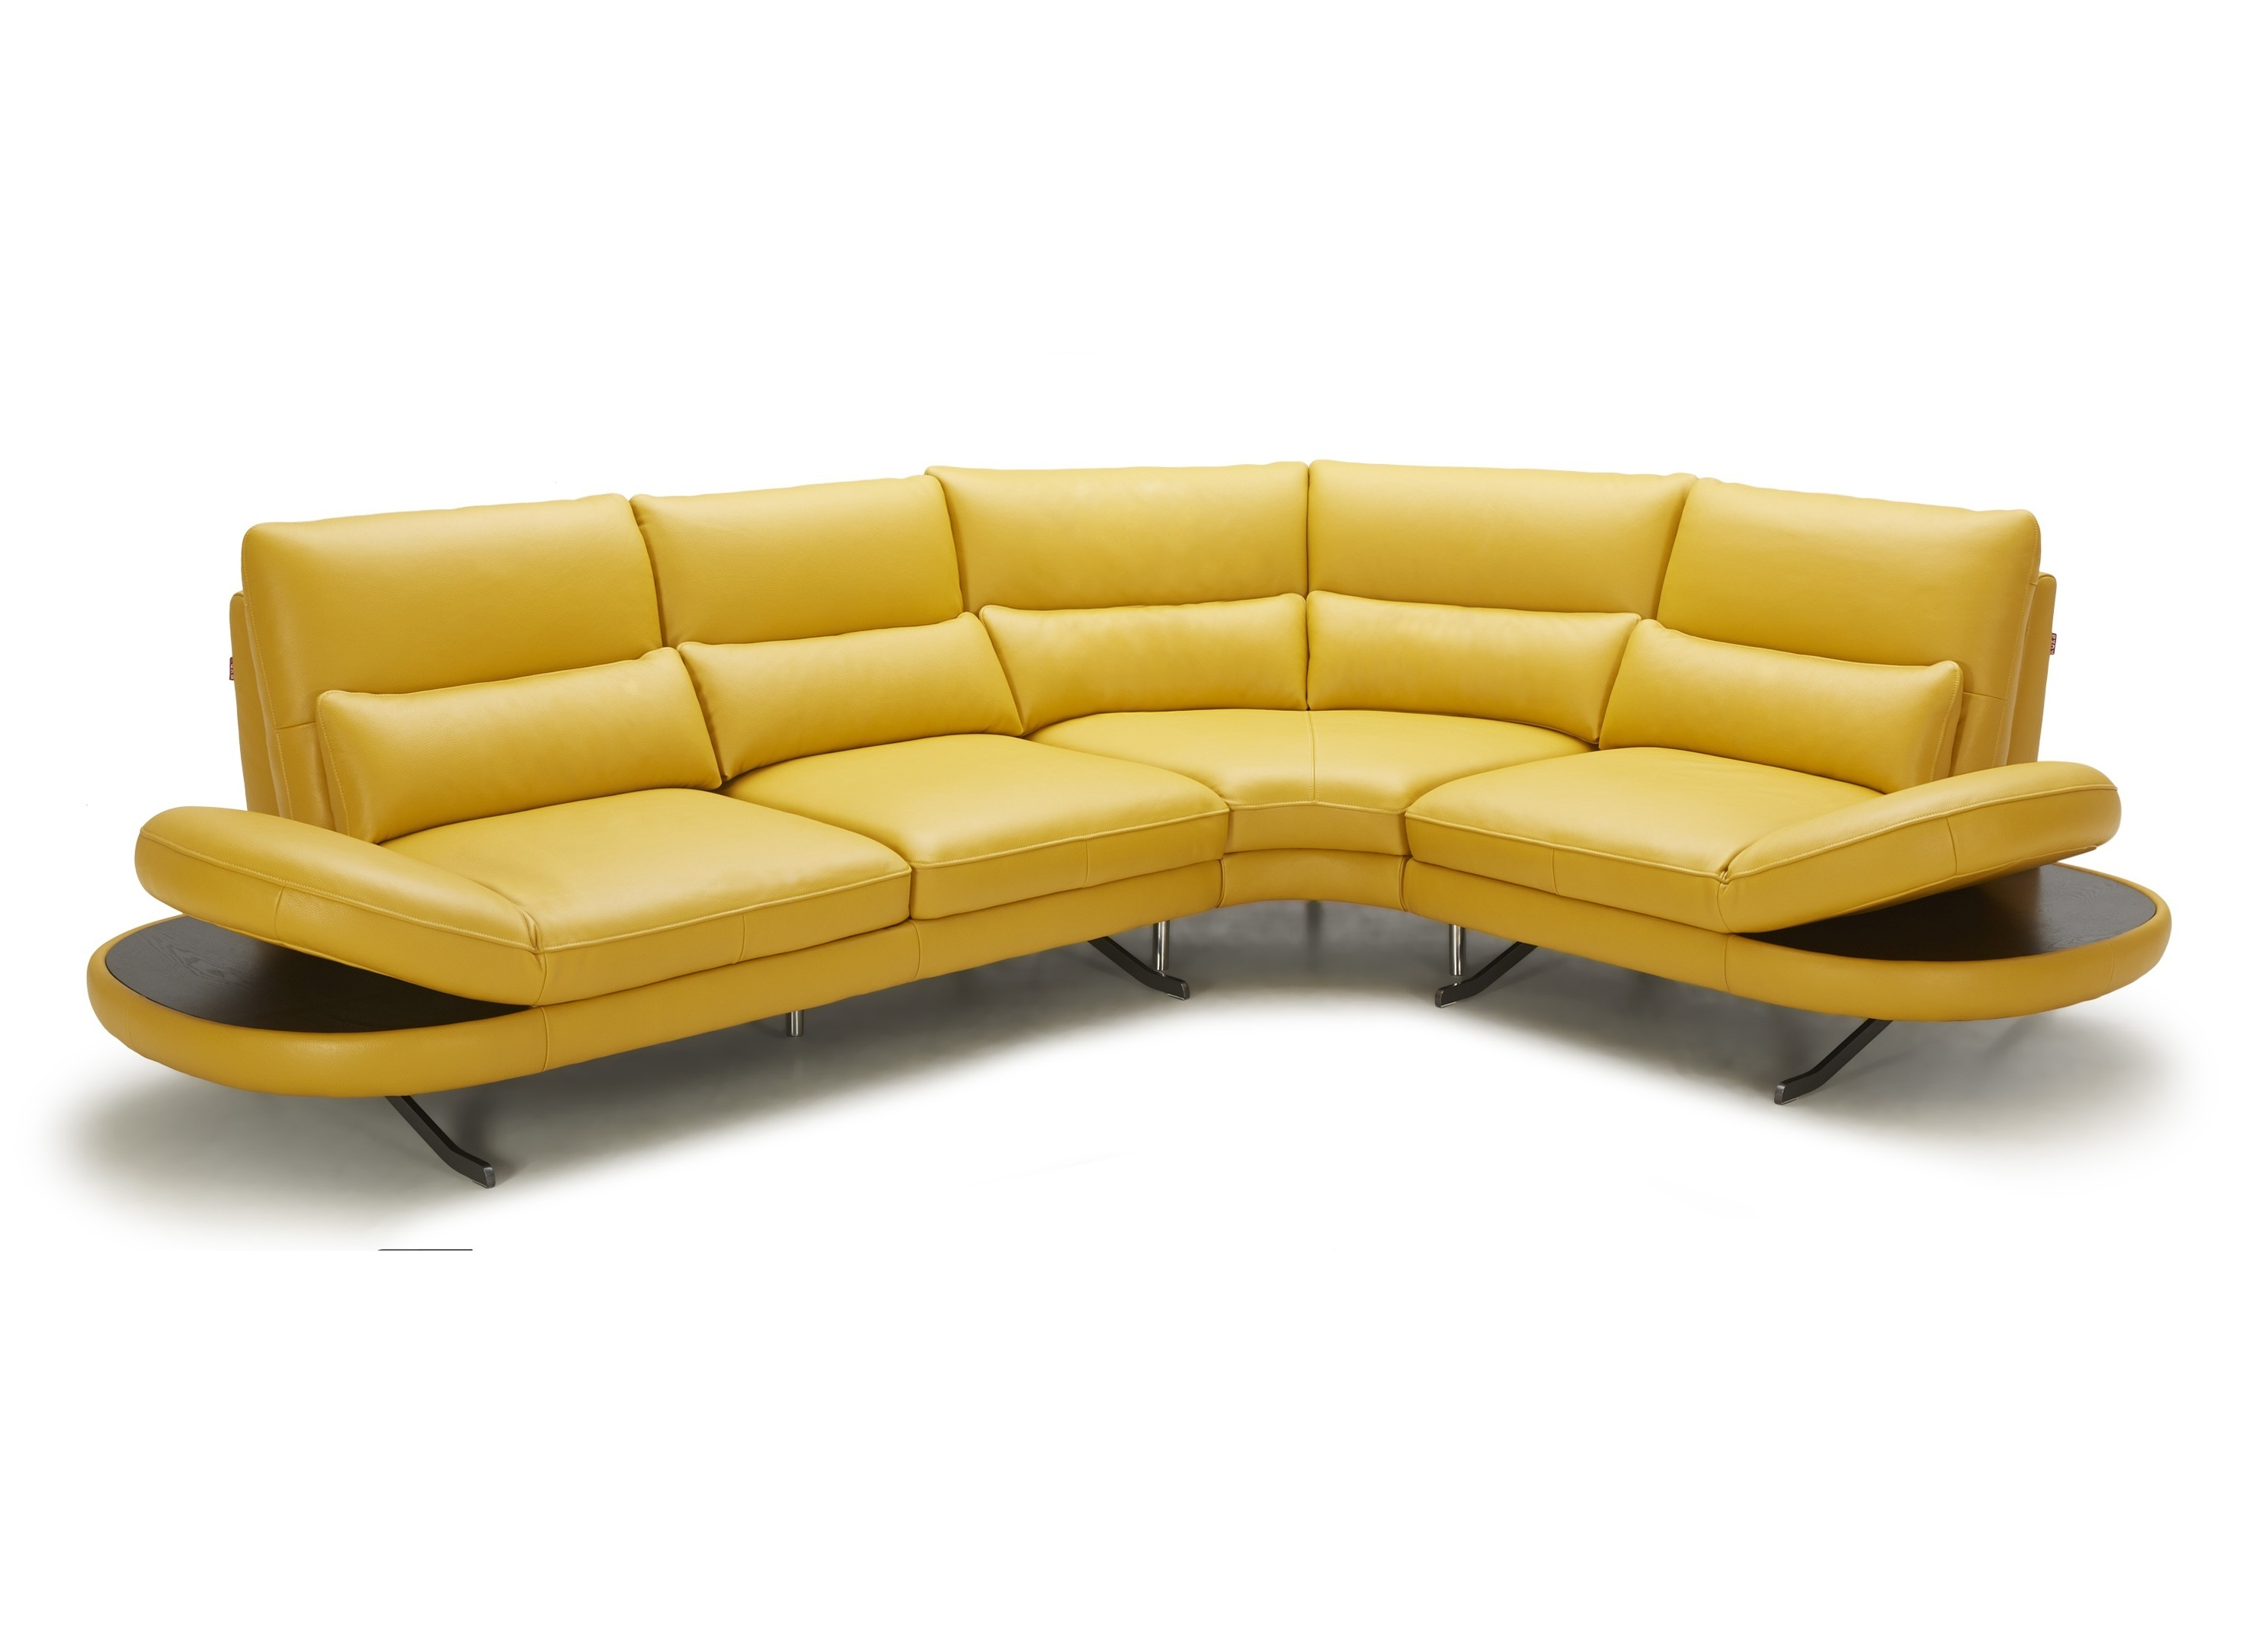 Setti Corner Sofa In Leather Not Just Brown : 4 5032 4 R from www.notjustbrown.com size 2976 x 2135 jpeg 426kB